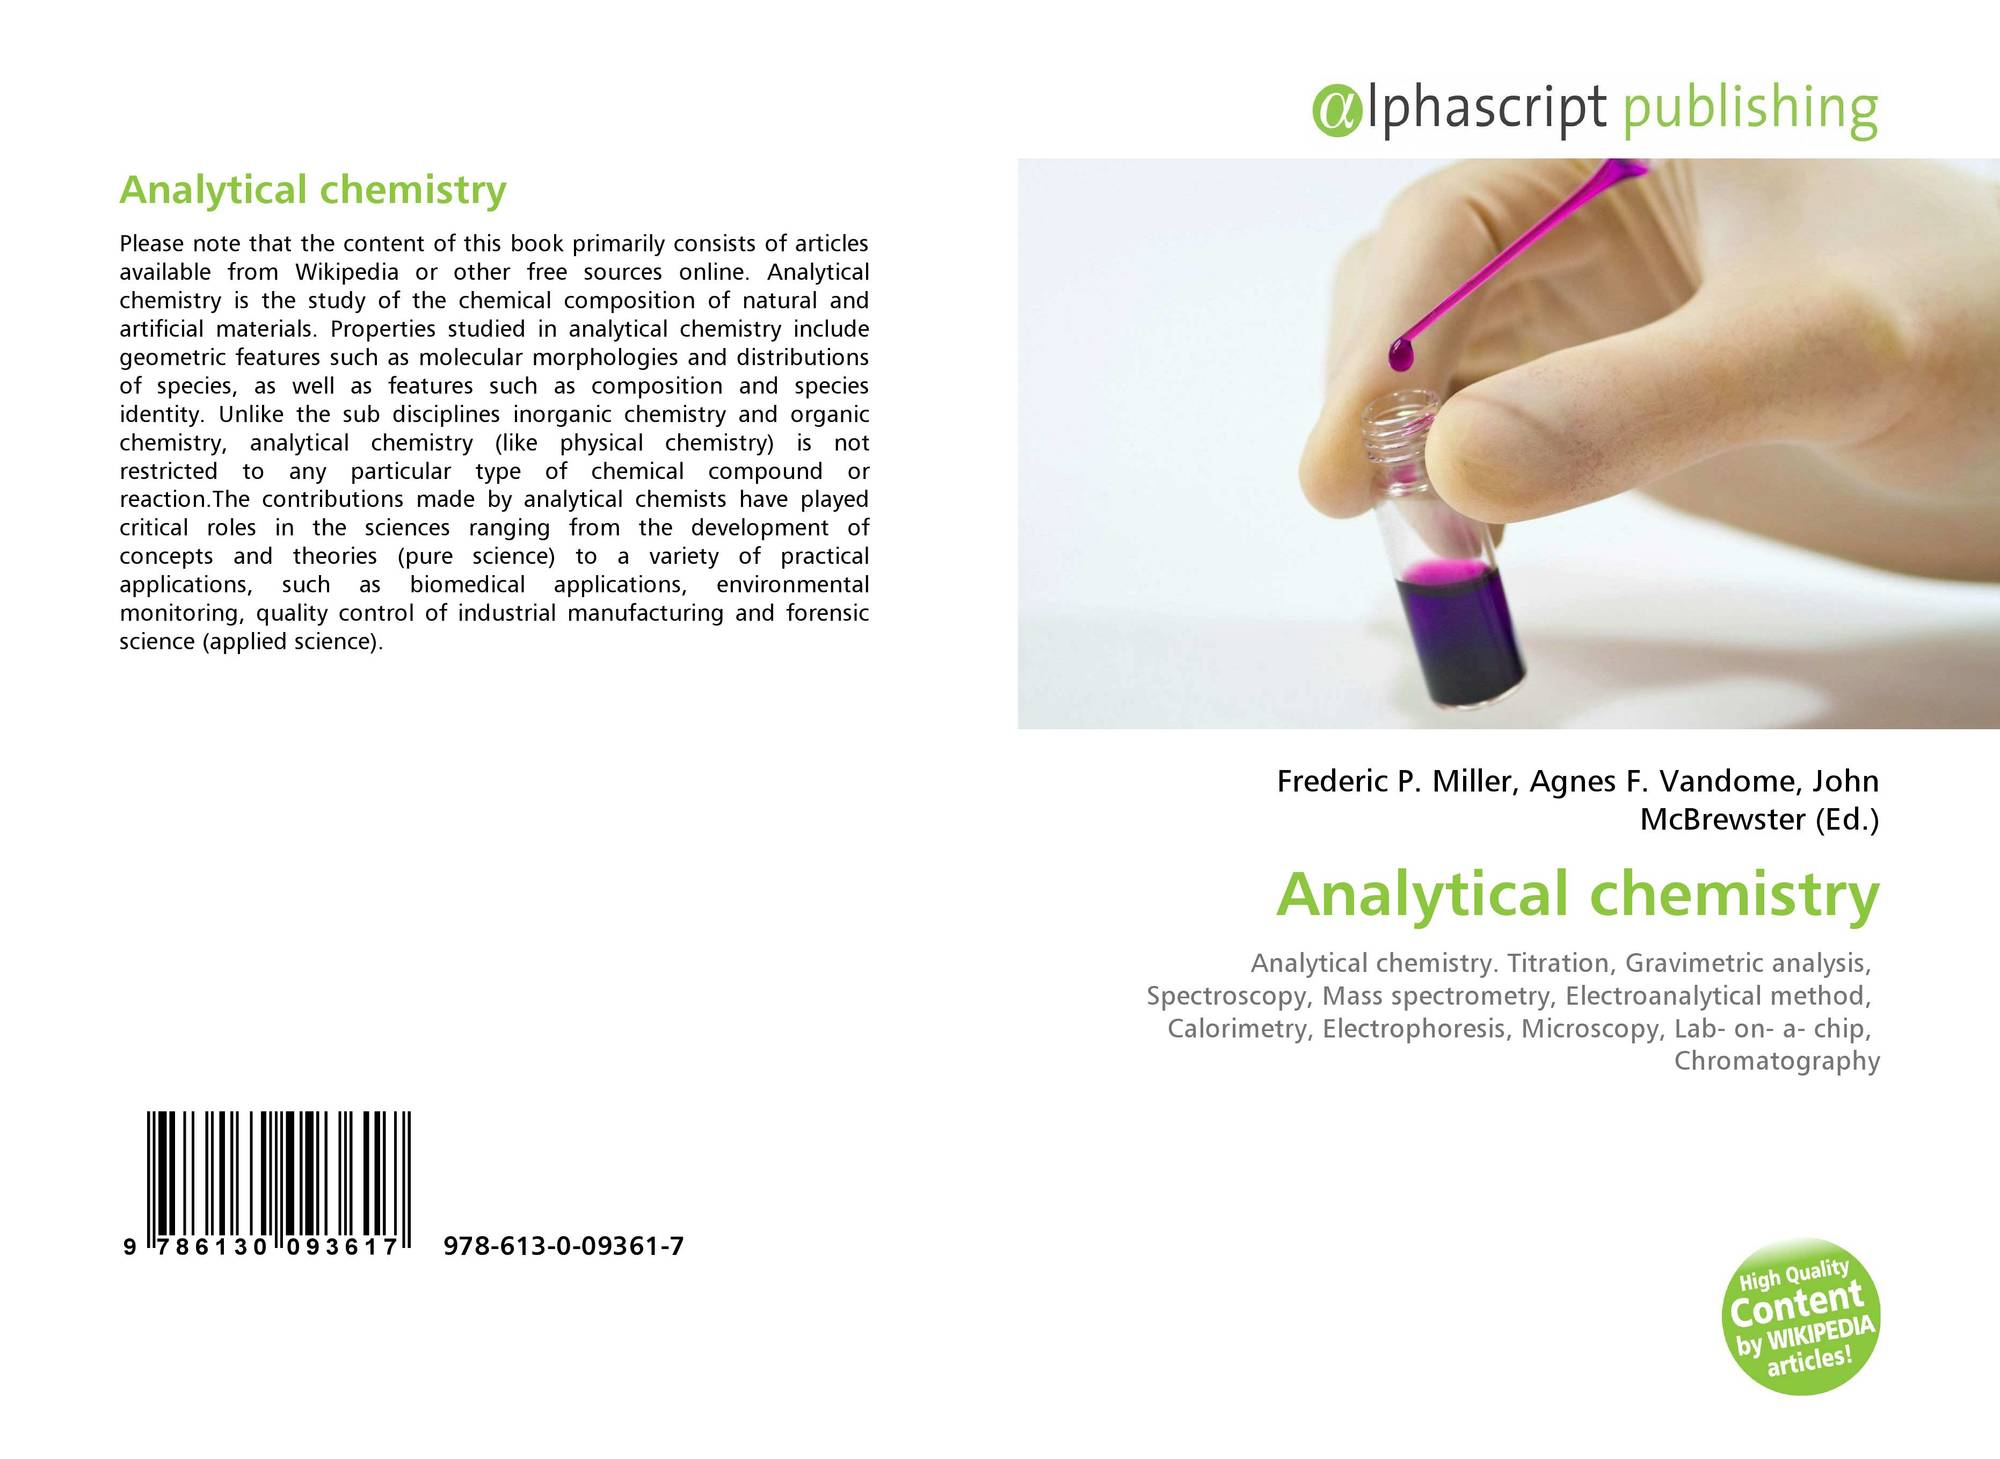 Analytical chemistry, 978-613-0-09361-7, 6130093616 ,9786130093617